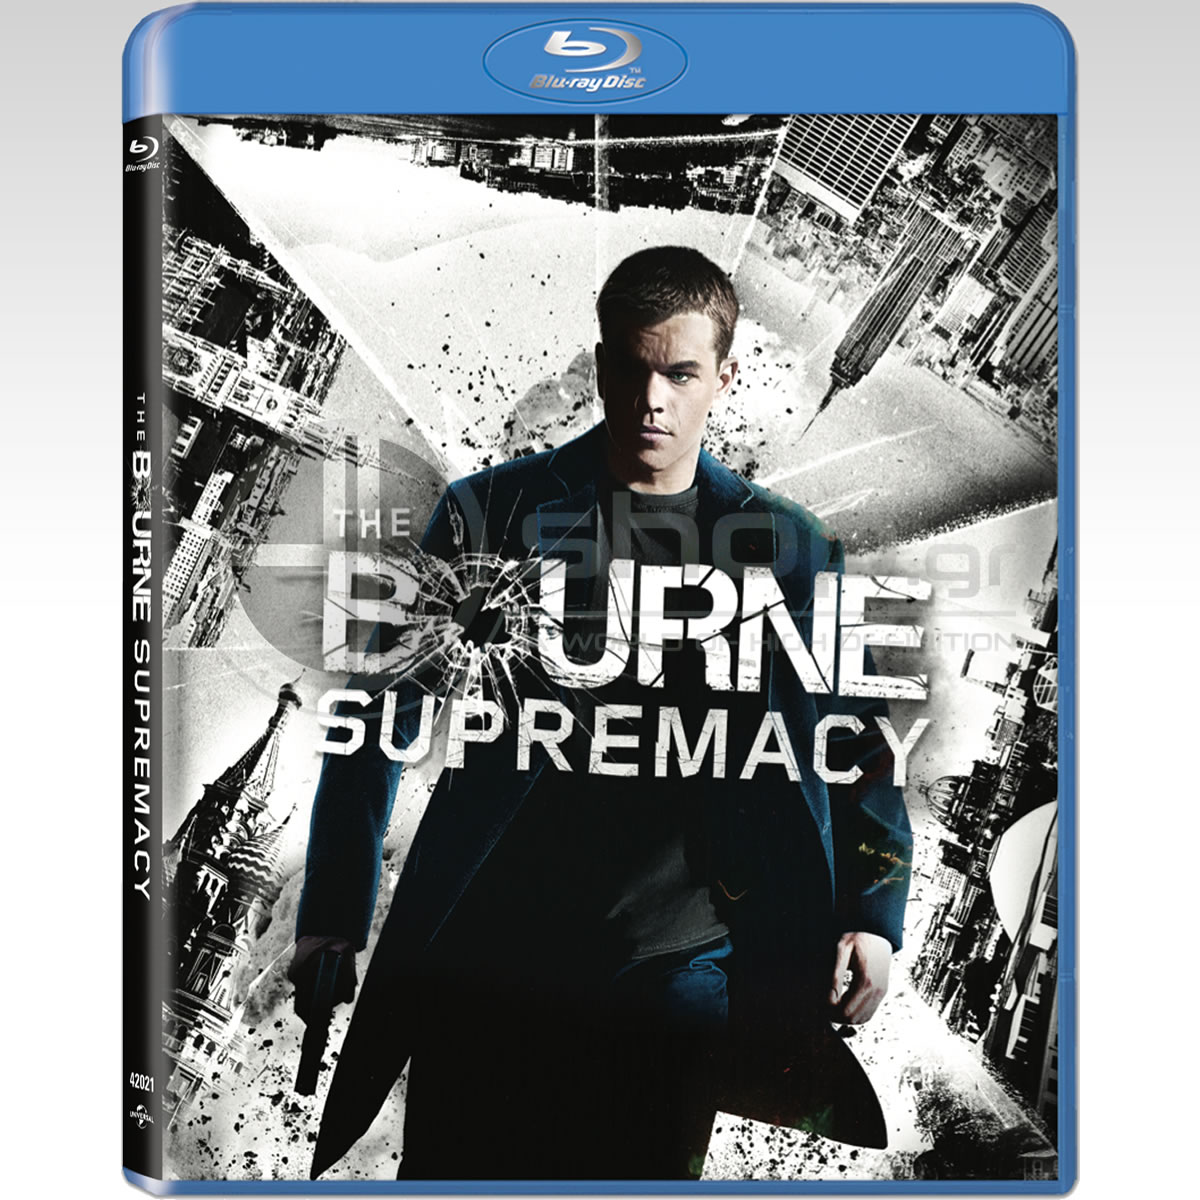 THE BOURNE SUPREMACY - ΣΤΗ ΣΚΙΑ ΤΩΝ ΚΑΤΑΣΚΟΠΩΝ Bullet Special Edition (BLU-RAY)